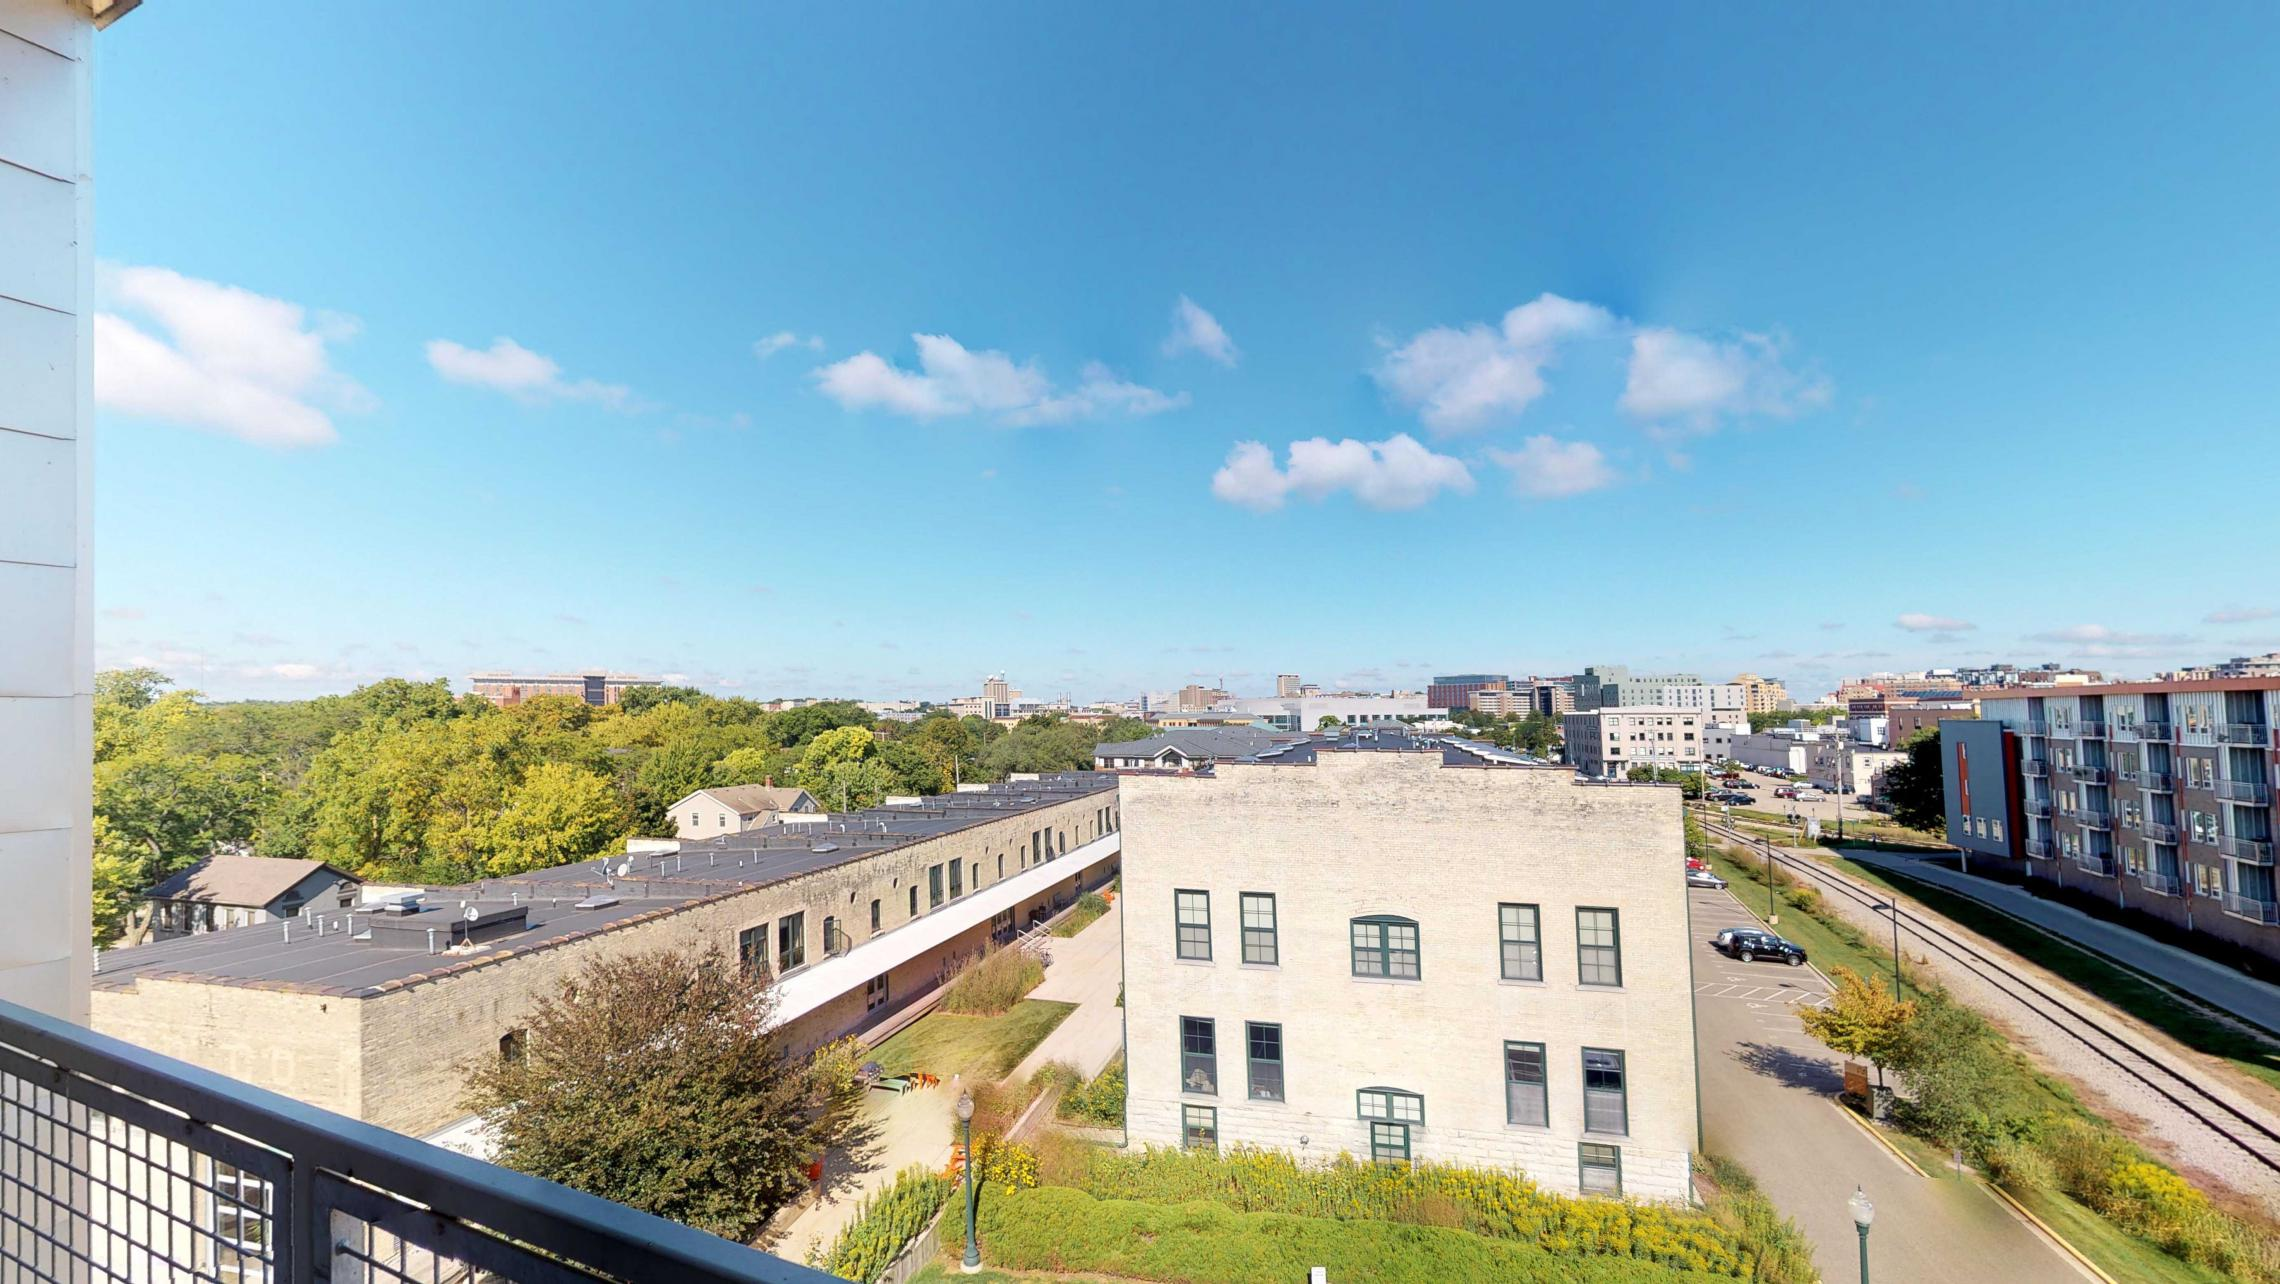 SEVEN27-Apartment-524-Two bedroom-Modern-Luxuy-Upscale-Capitol View-Lake View-Tp Floor-Balcony-Terrace-City View-madison.jpg